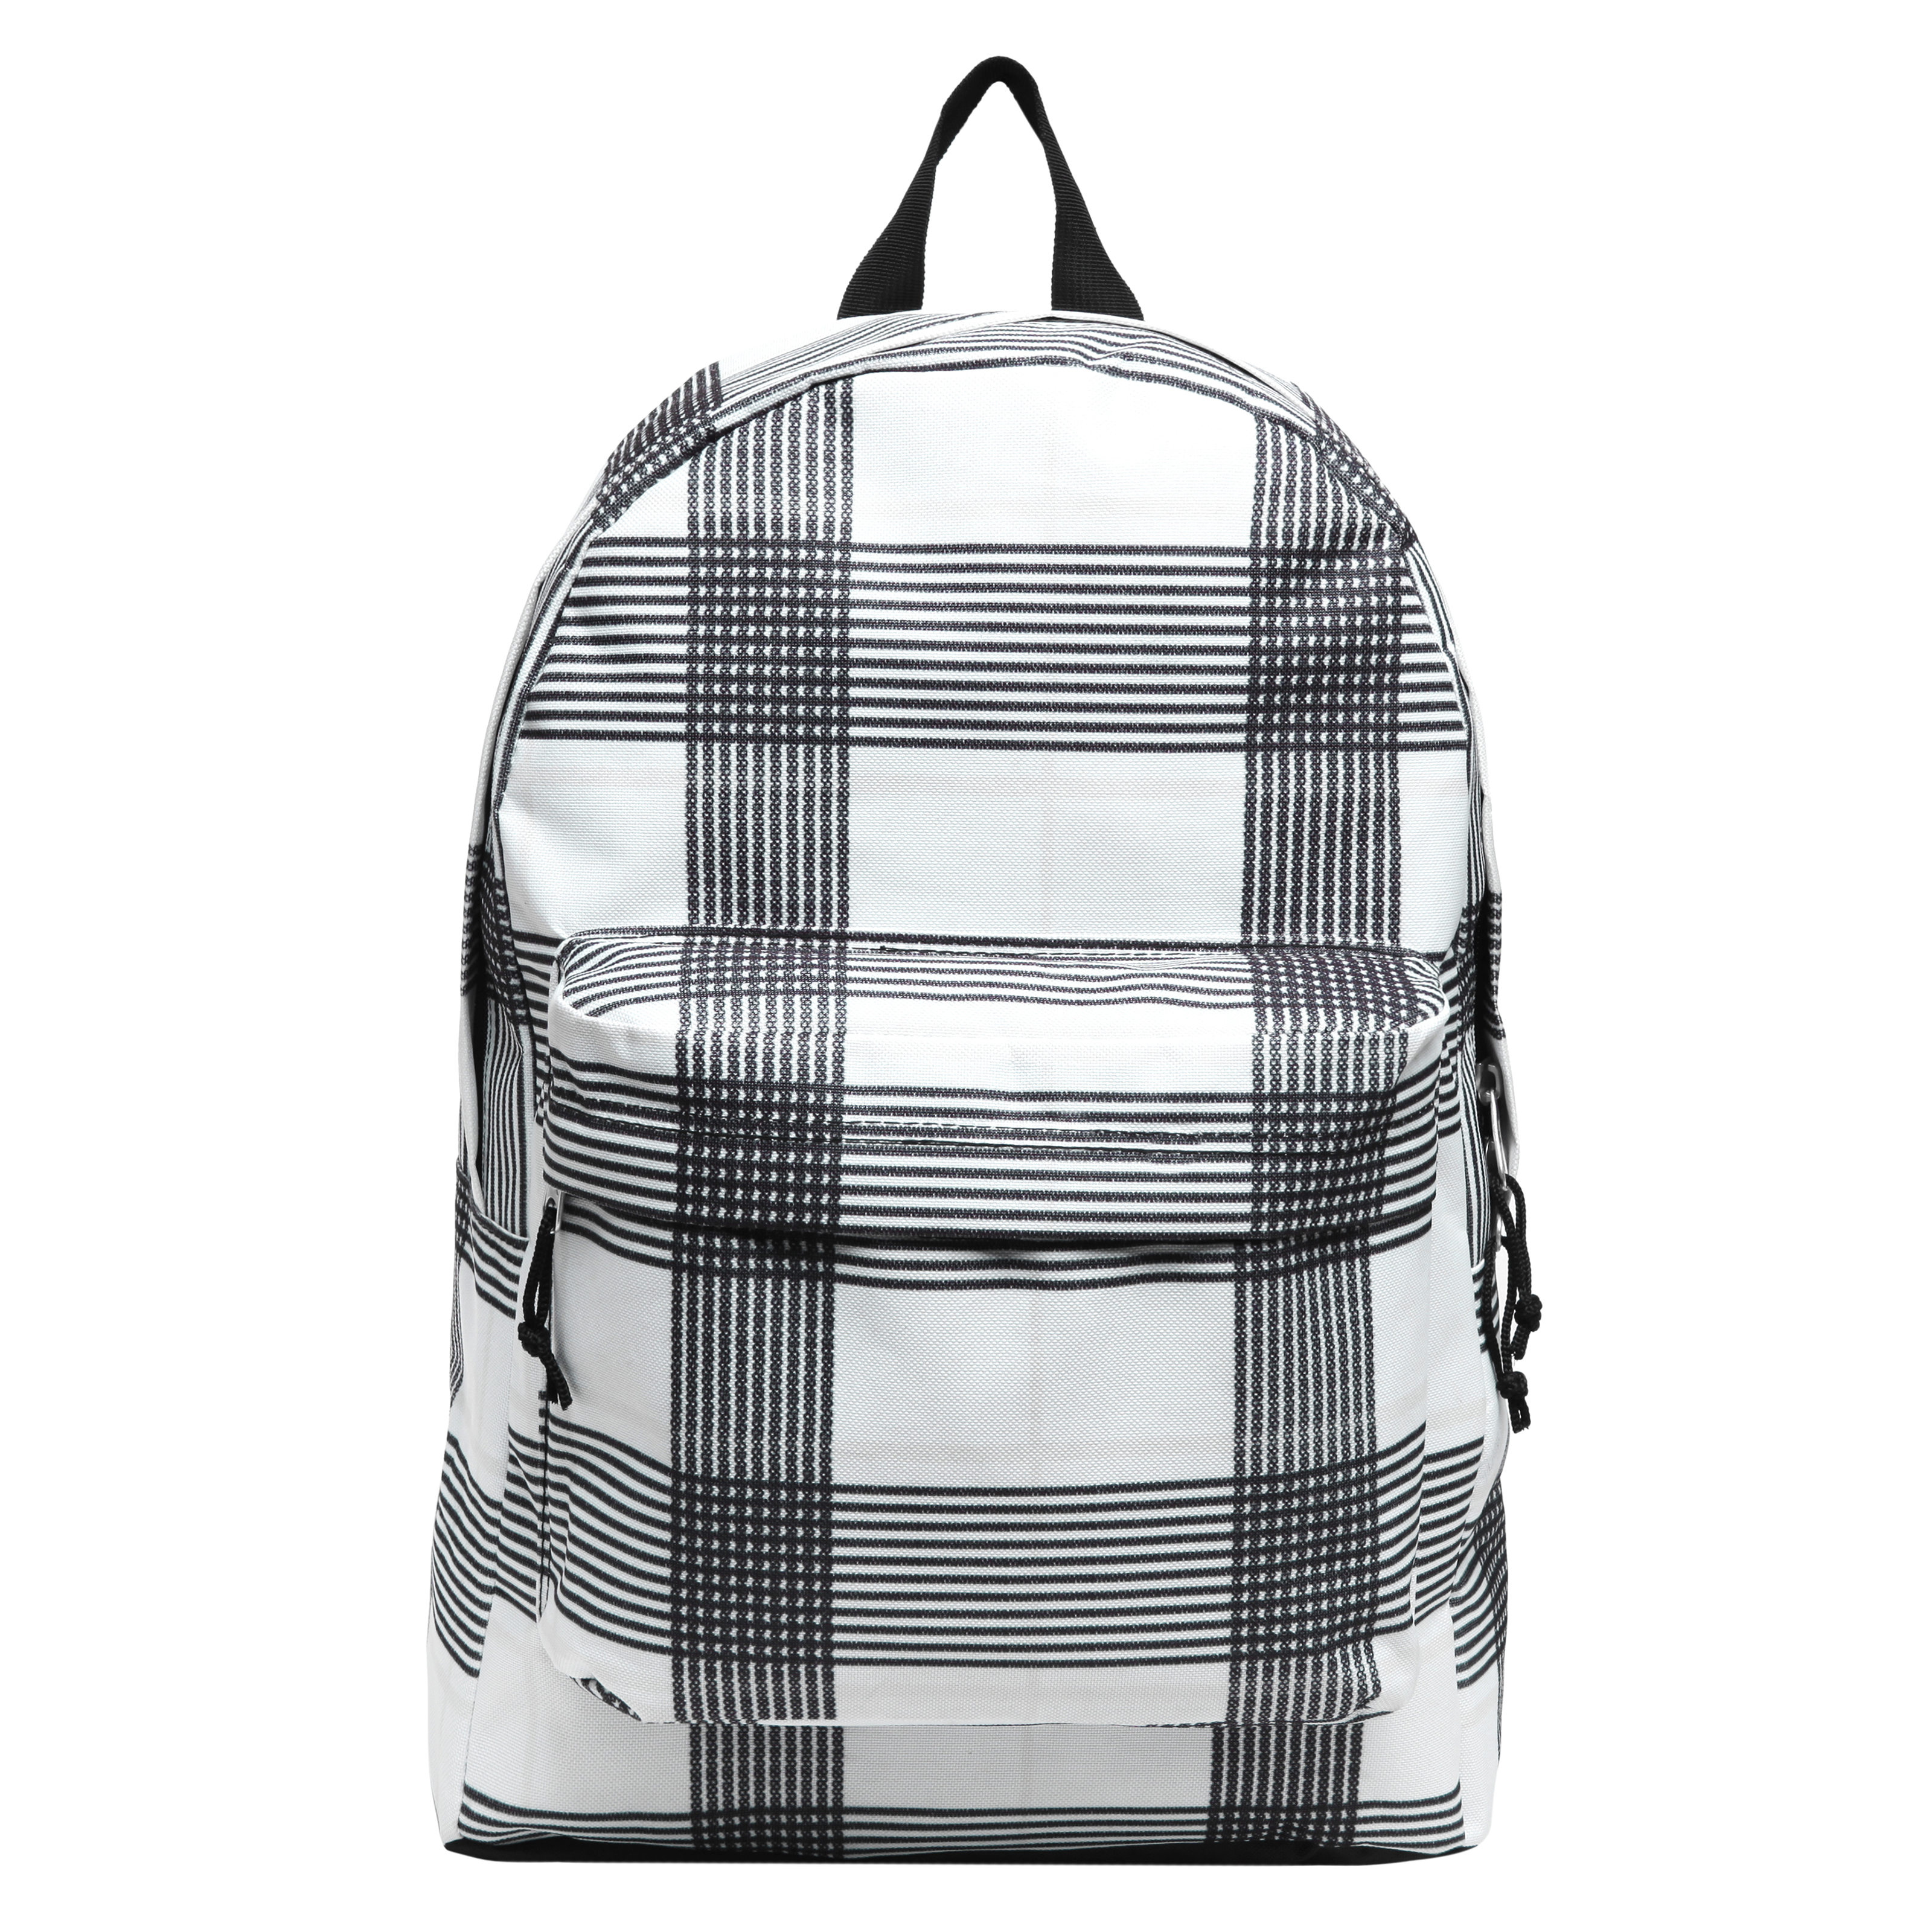 Black and White Cross Striped Kids Wholesale Backpack